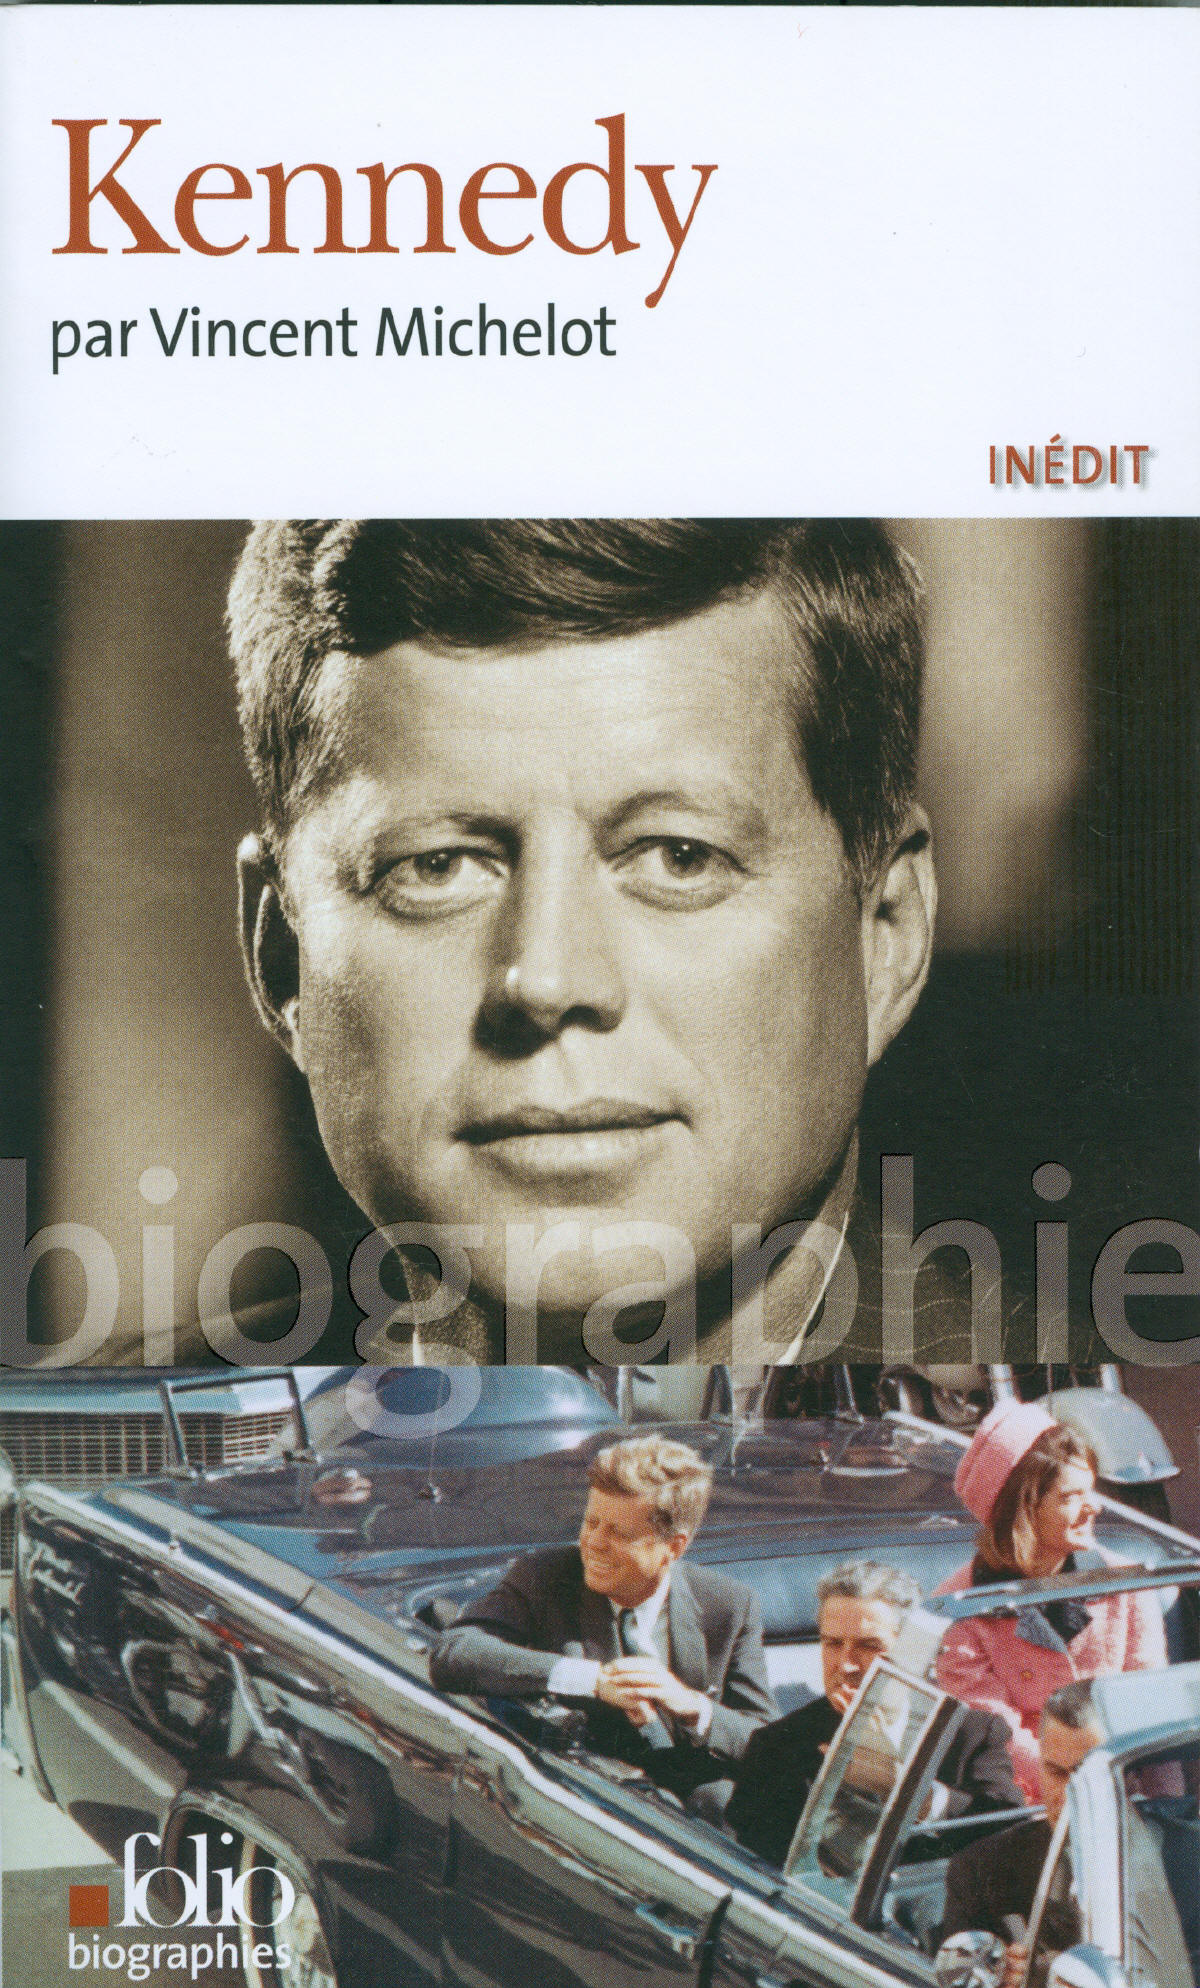 an introduction to the life and political history of john fitzgerald kennedy Assassination or conspiracy  international baccalaureate   aspects about john f kennedy's life  of the american people towards john fitzgerald kennedy.